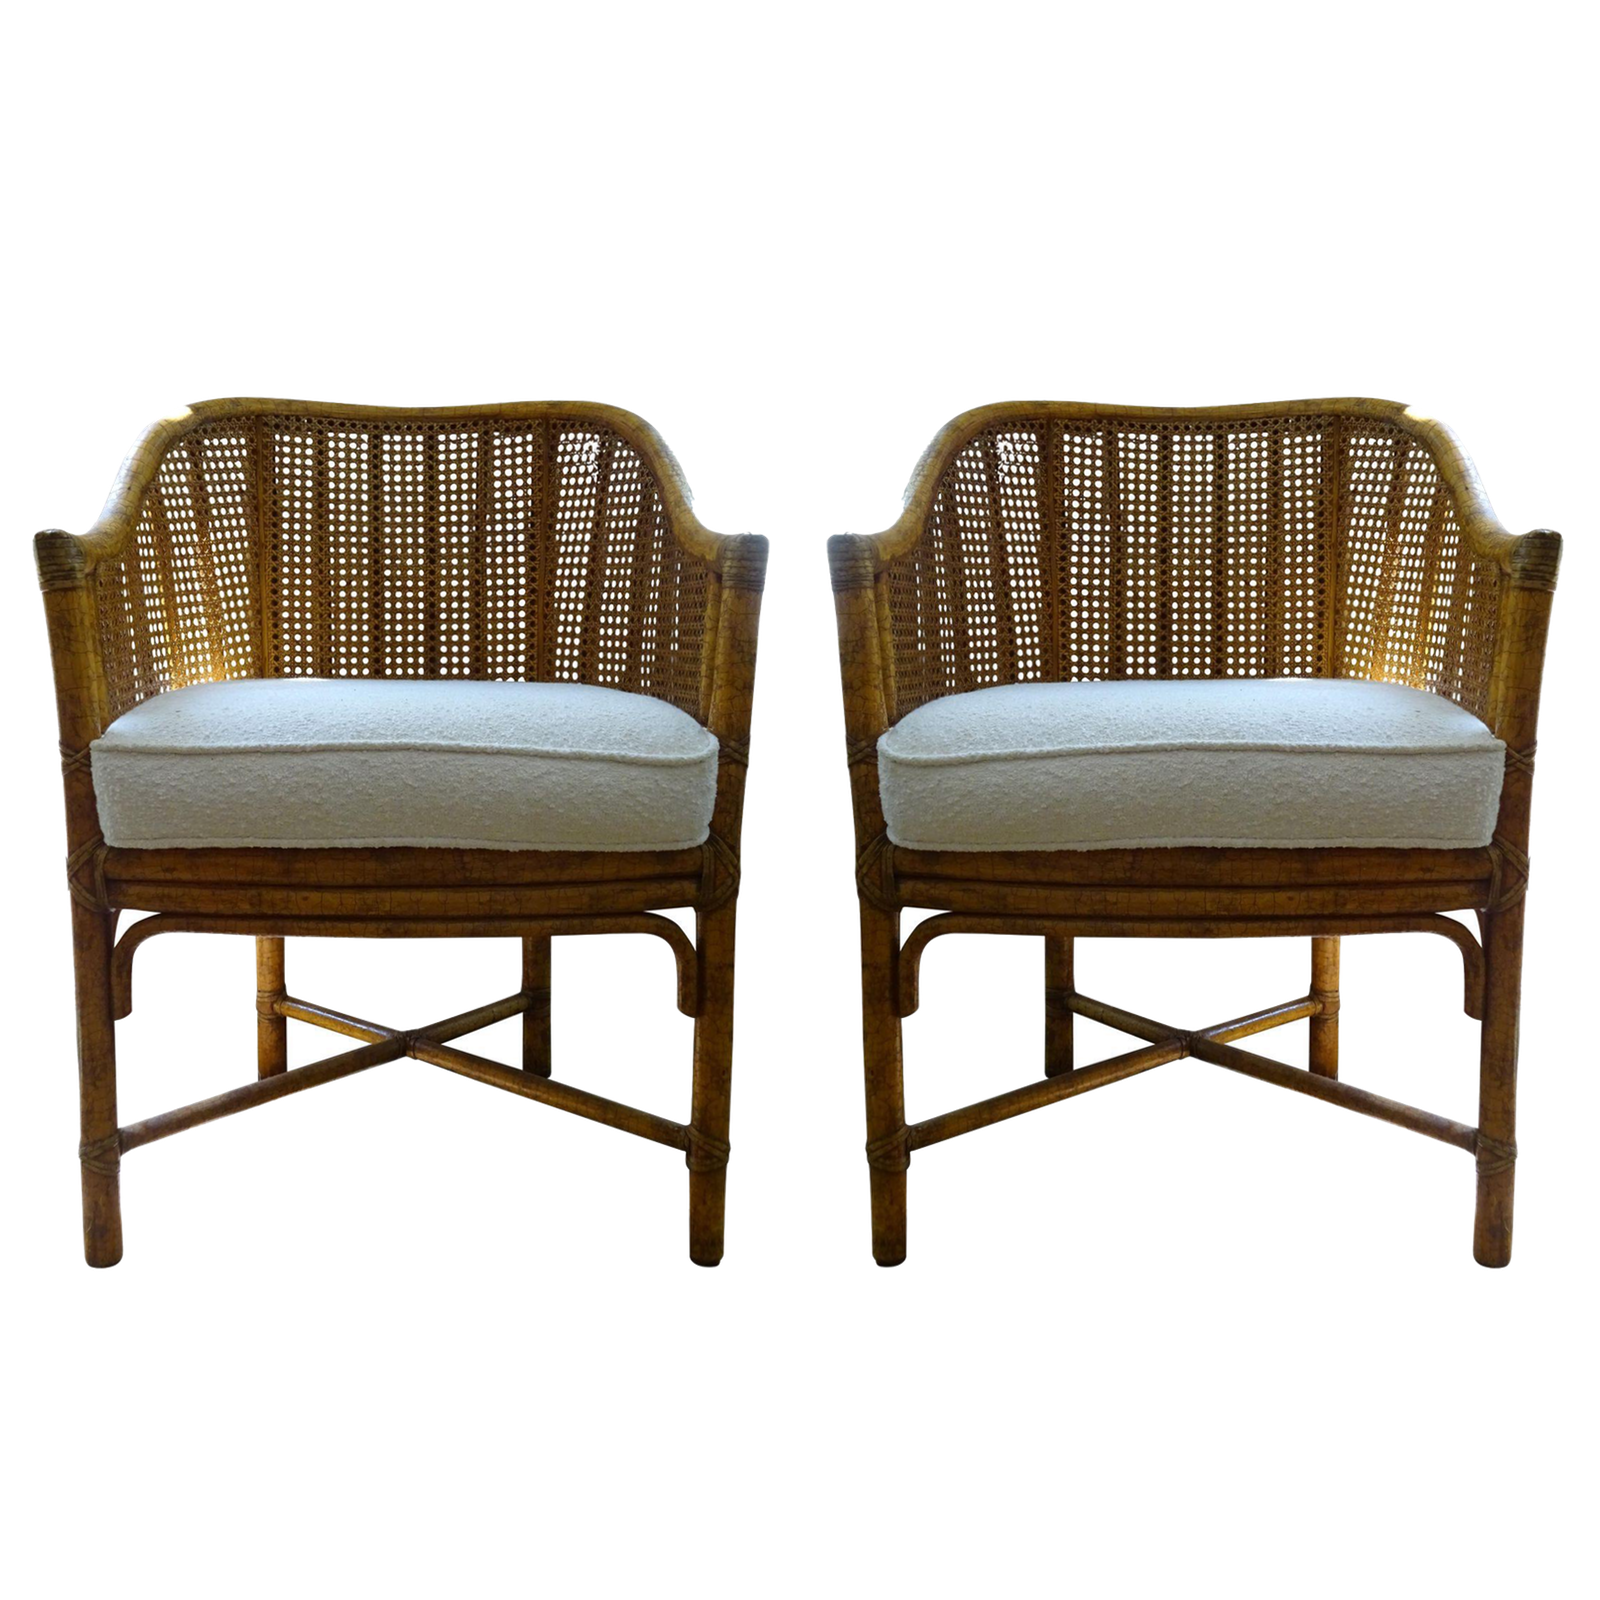 Vintage Mcguire Cane Bamboo Barrel Chairs A Pair Chairish